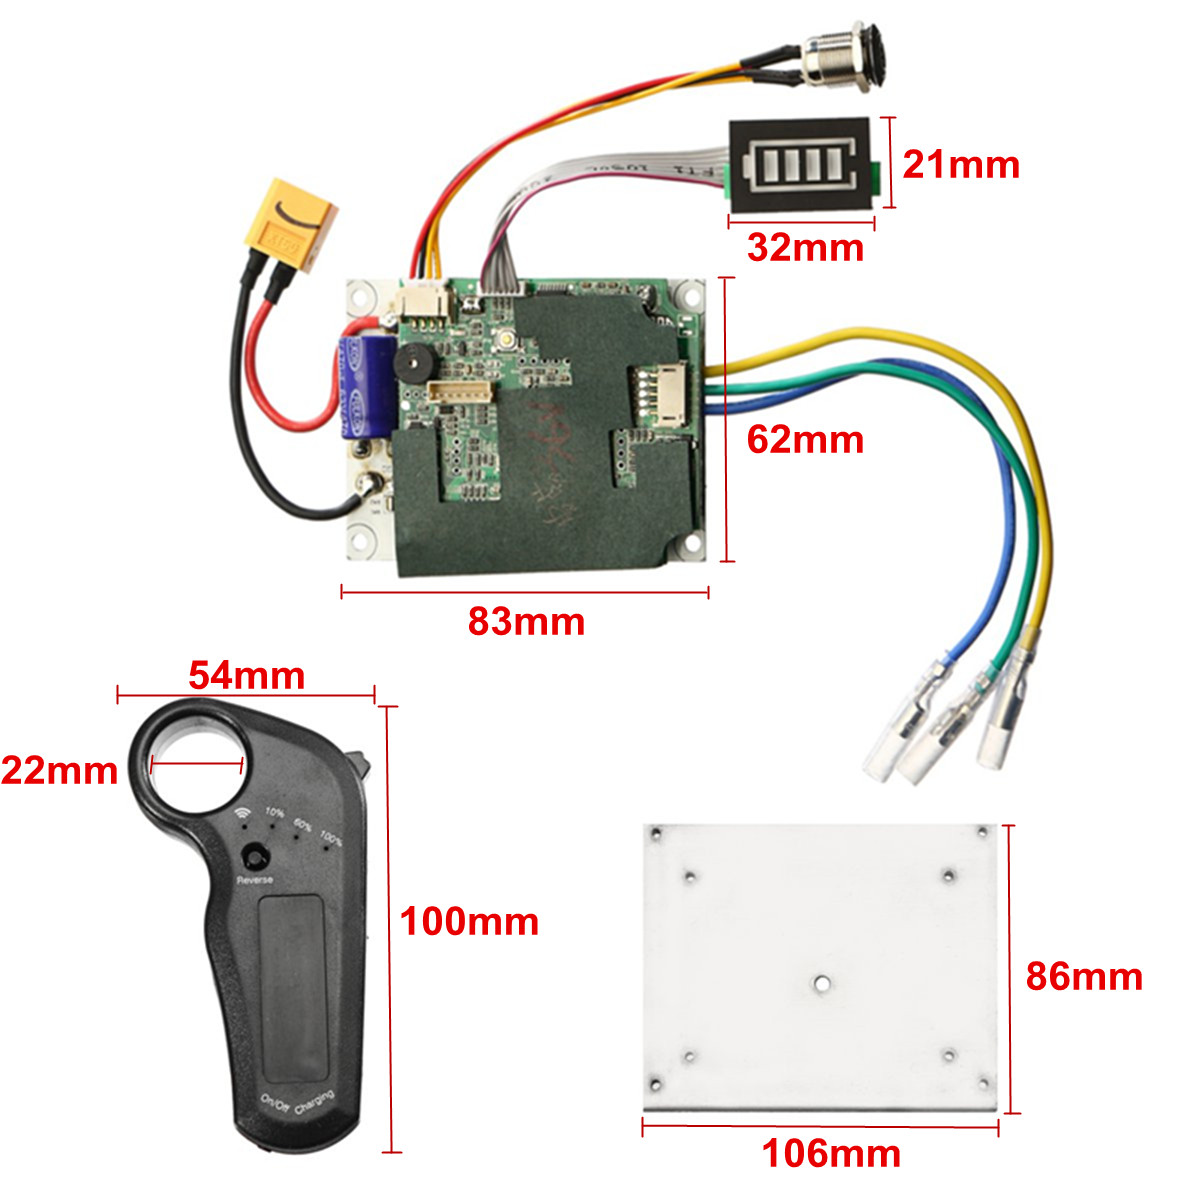 24/36V Single Motor Electric System Driver Noninductive Longboard Skateboard Controller Remote ESC Substitute